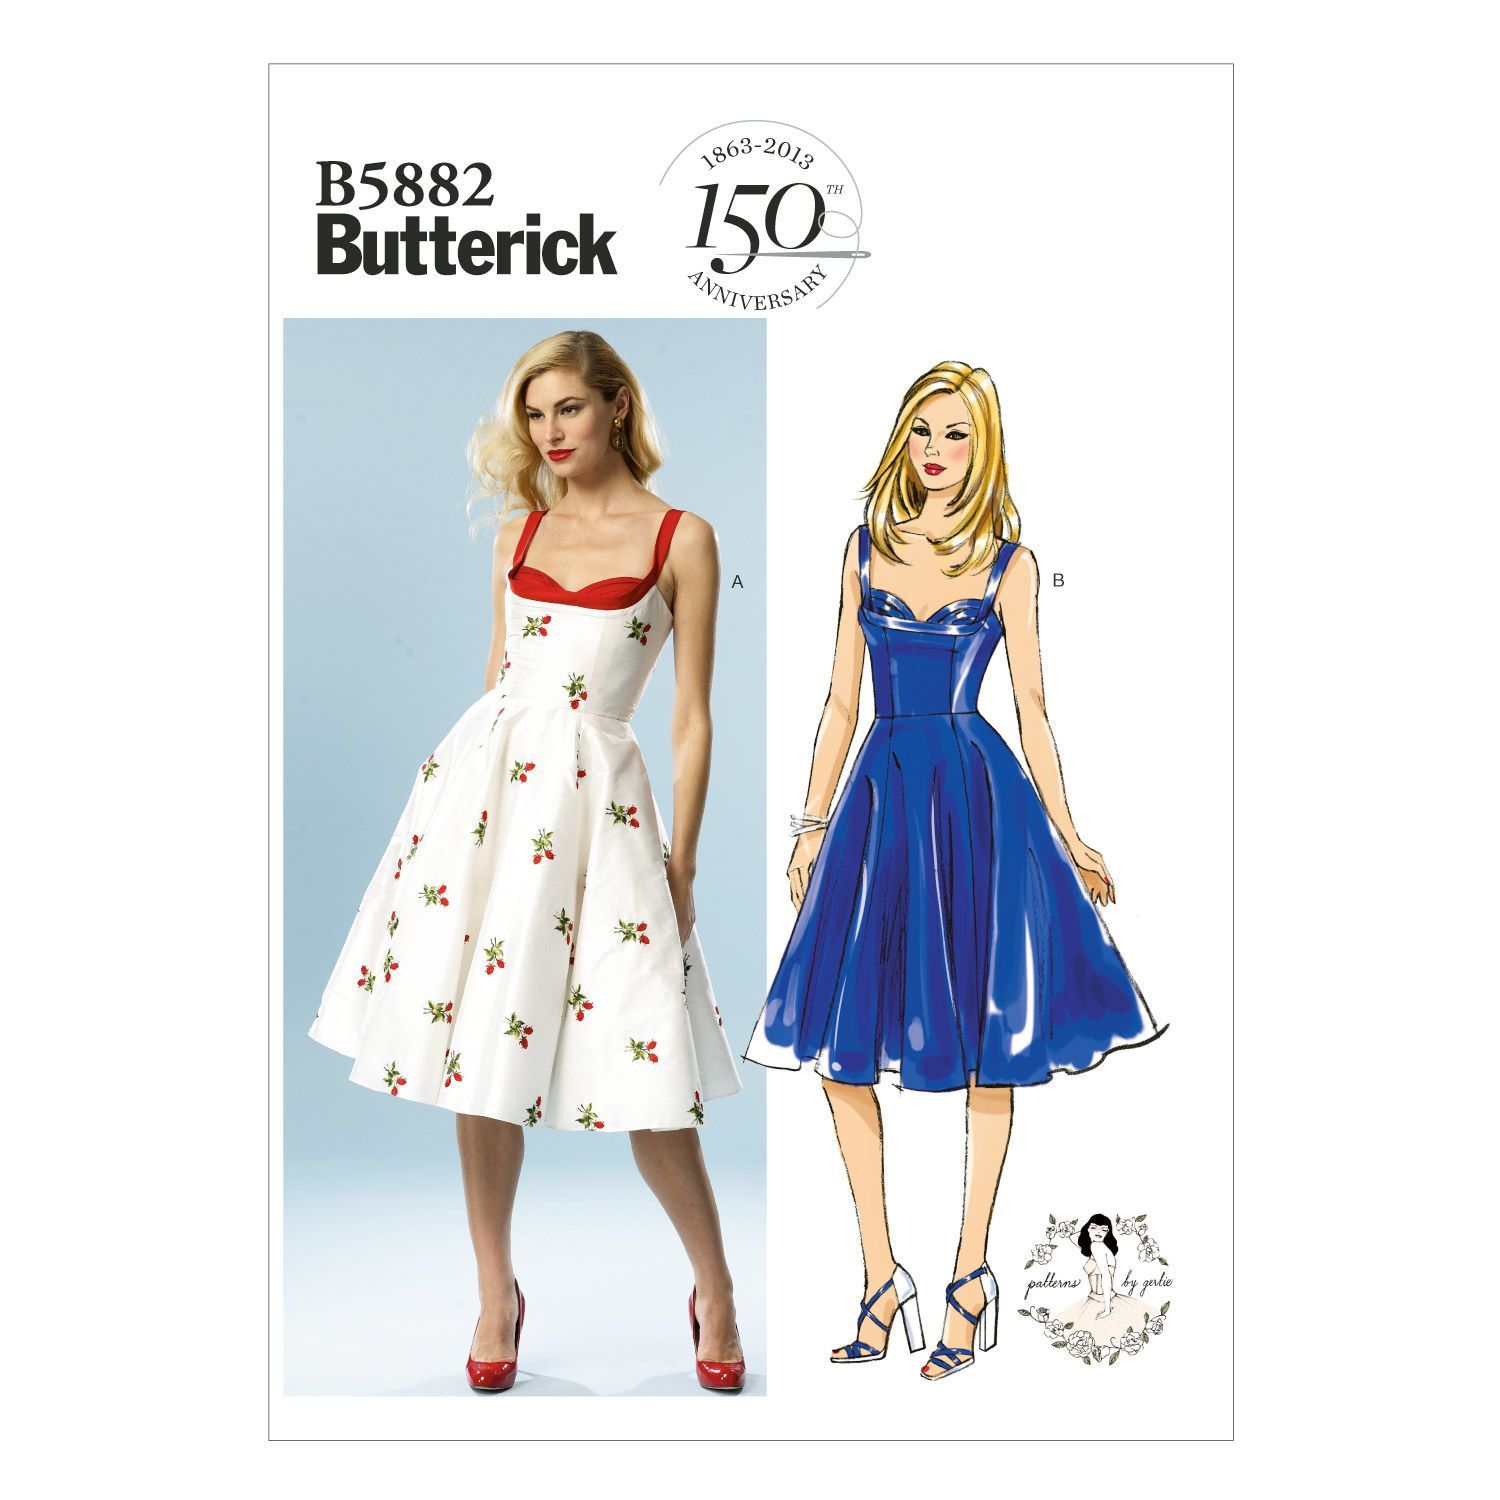 Butterick Ladies Easy Sewing Pattern 6129 Vintage Style Dresses